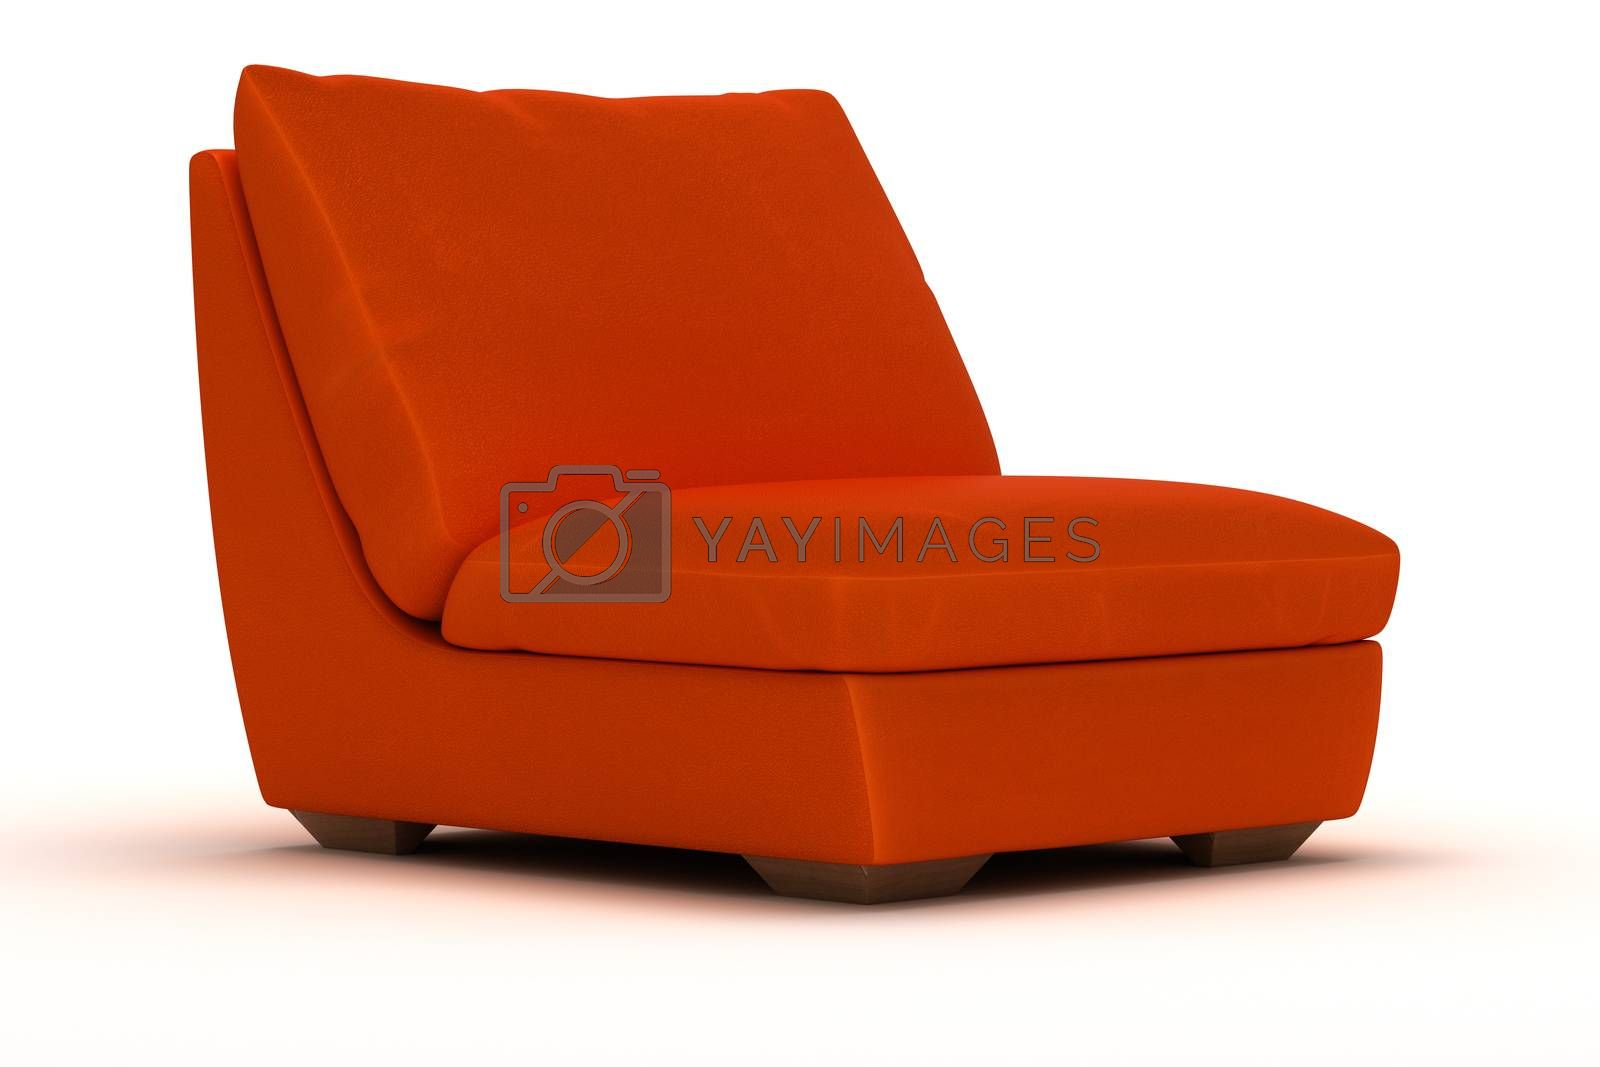 Royalty free image of Orange Leather Armchair by selensergen